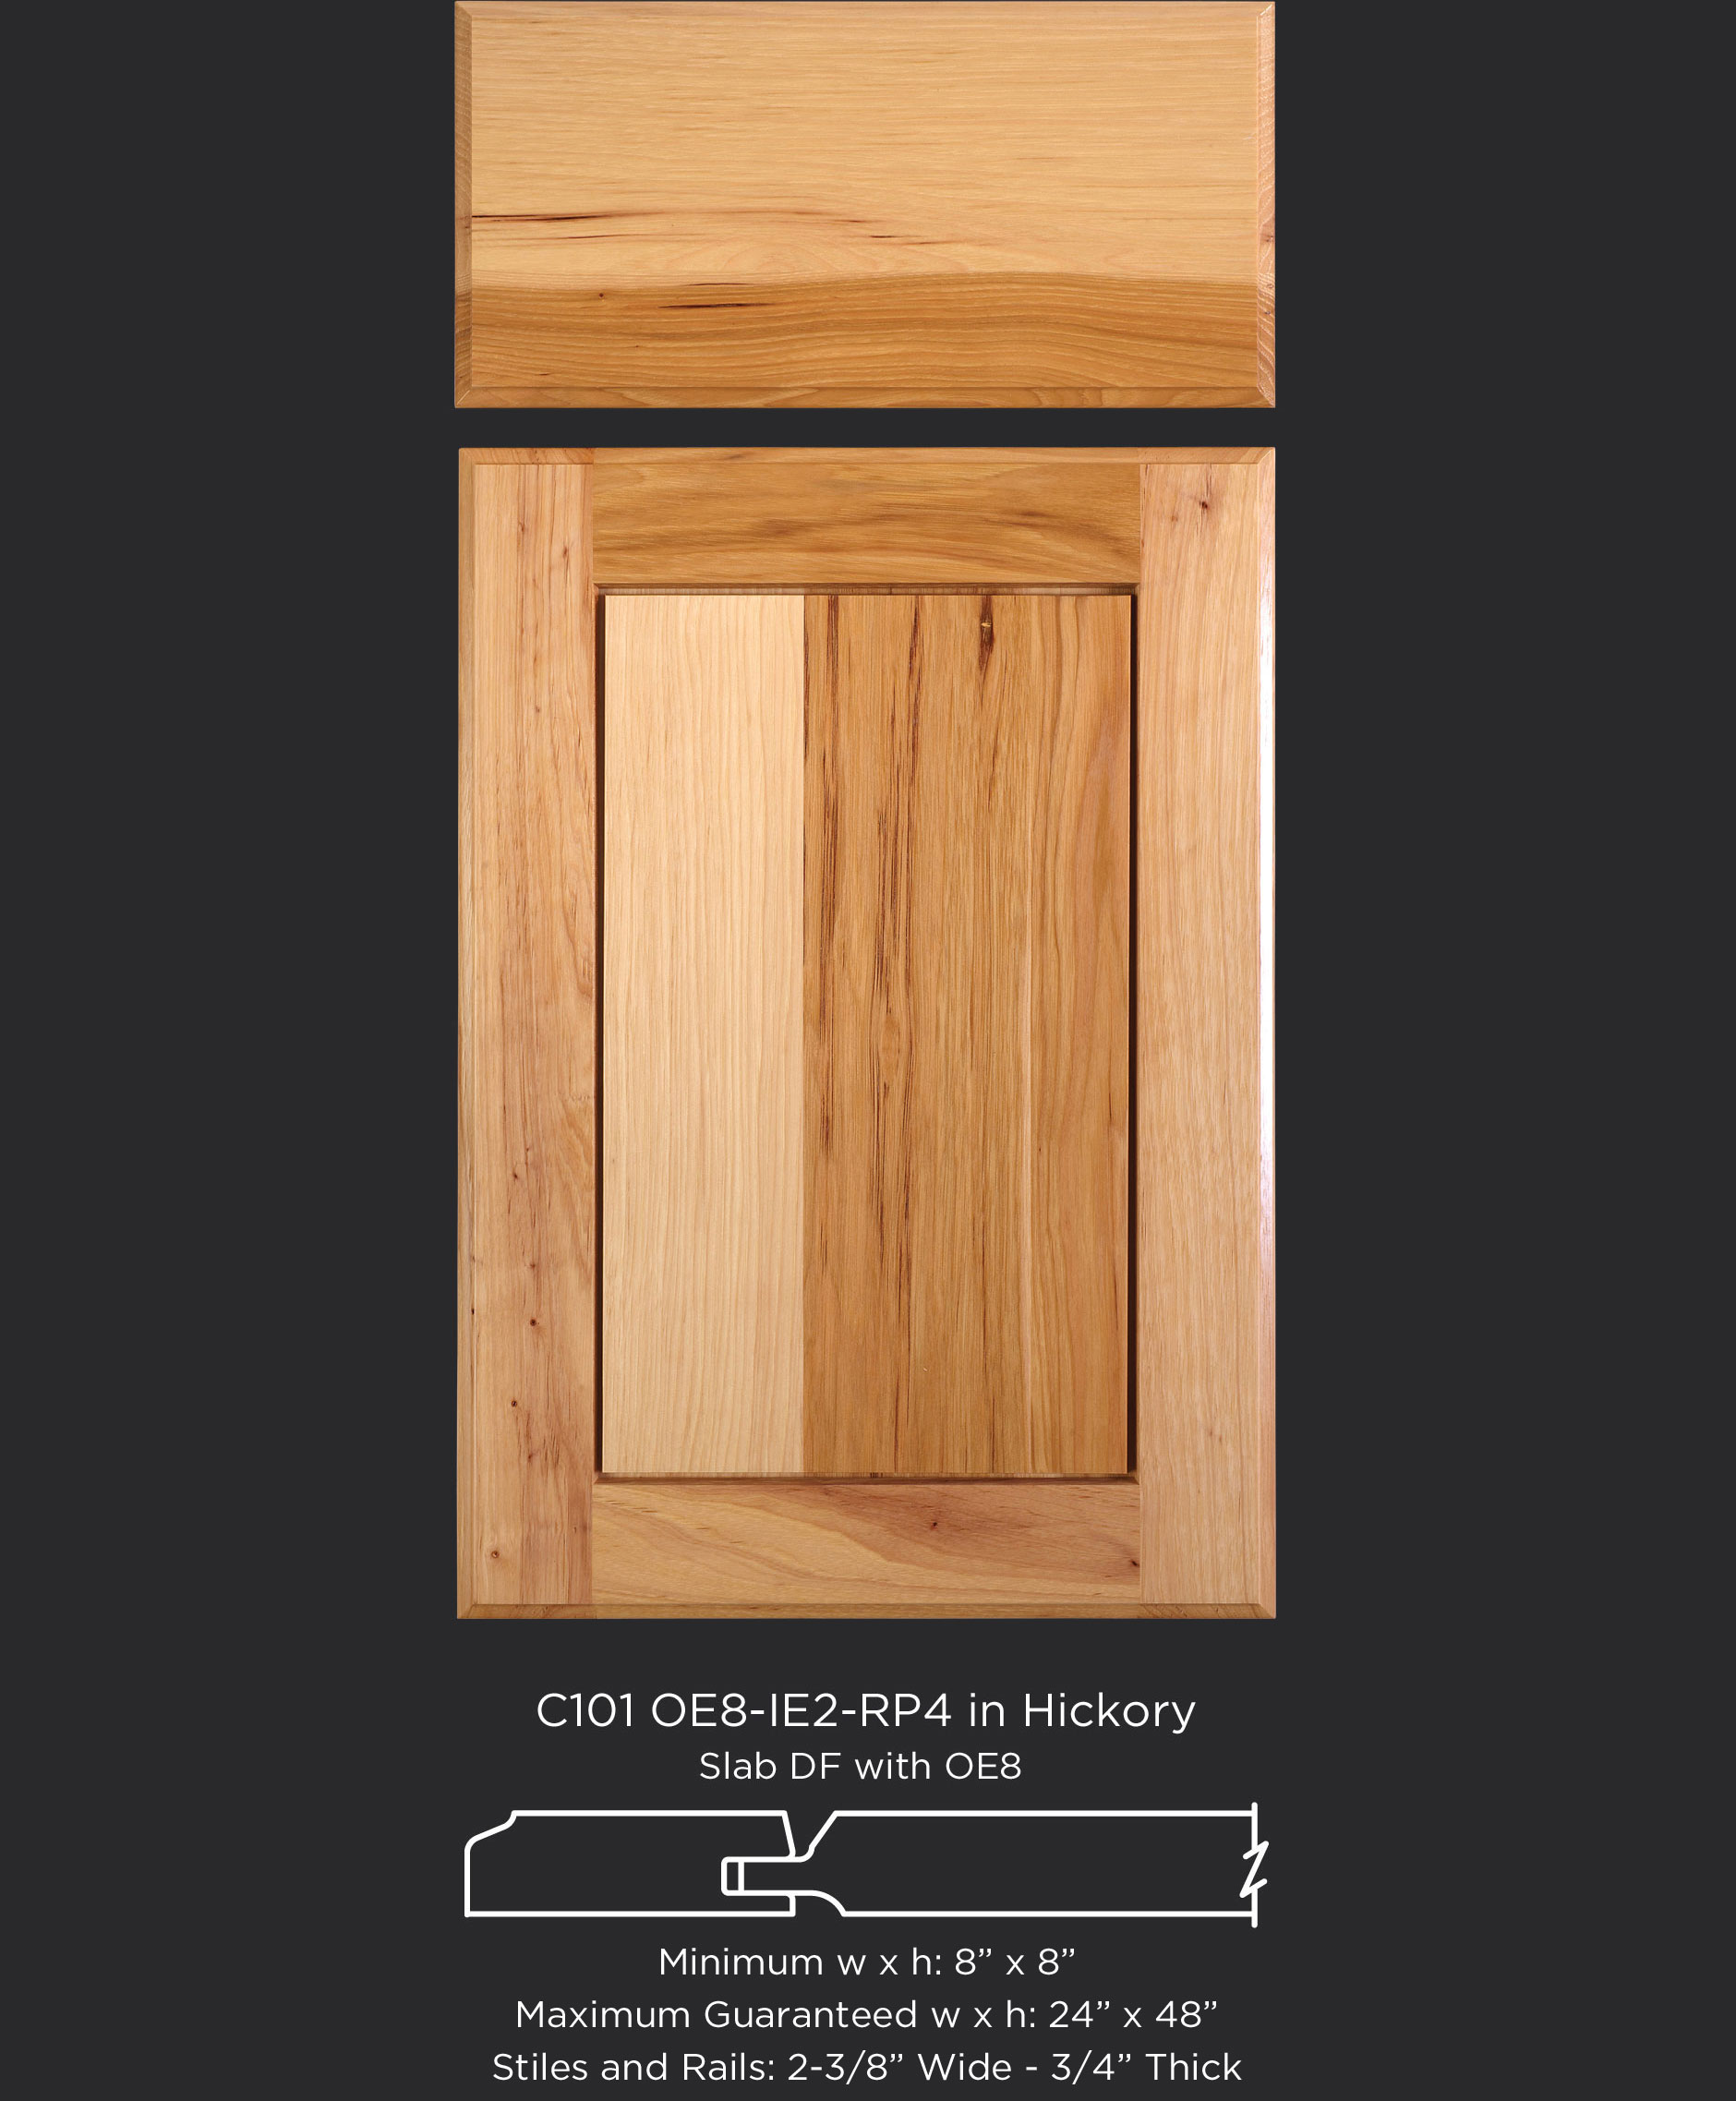 Colorado Knotty Alder Kitchen Cabinets: C101 OE8-IE2-RP4 Hickory, Natural